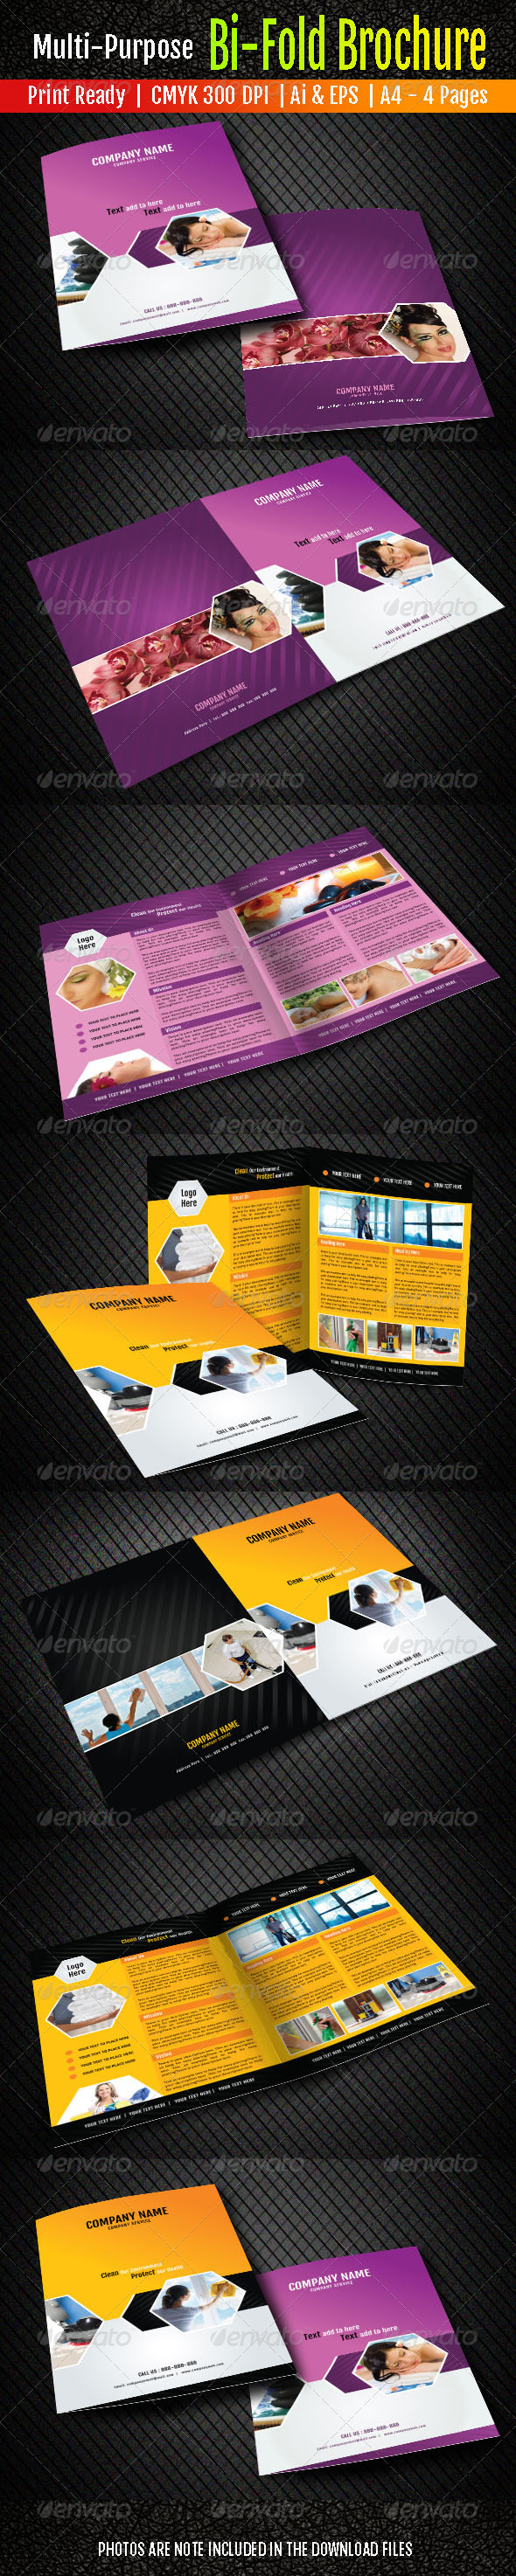 GraphicRiver Bi-Fold Brochure 6476210